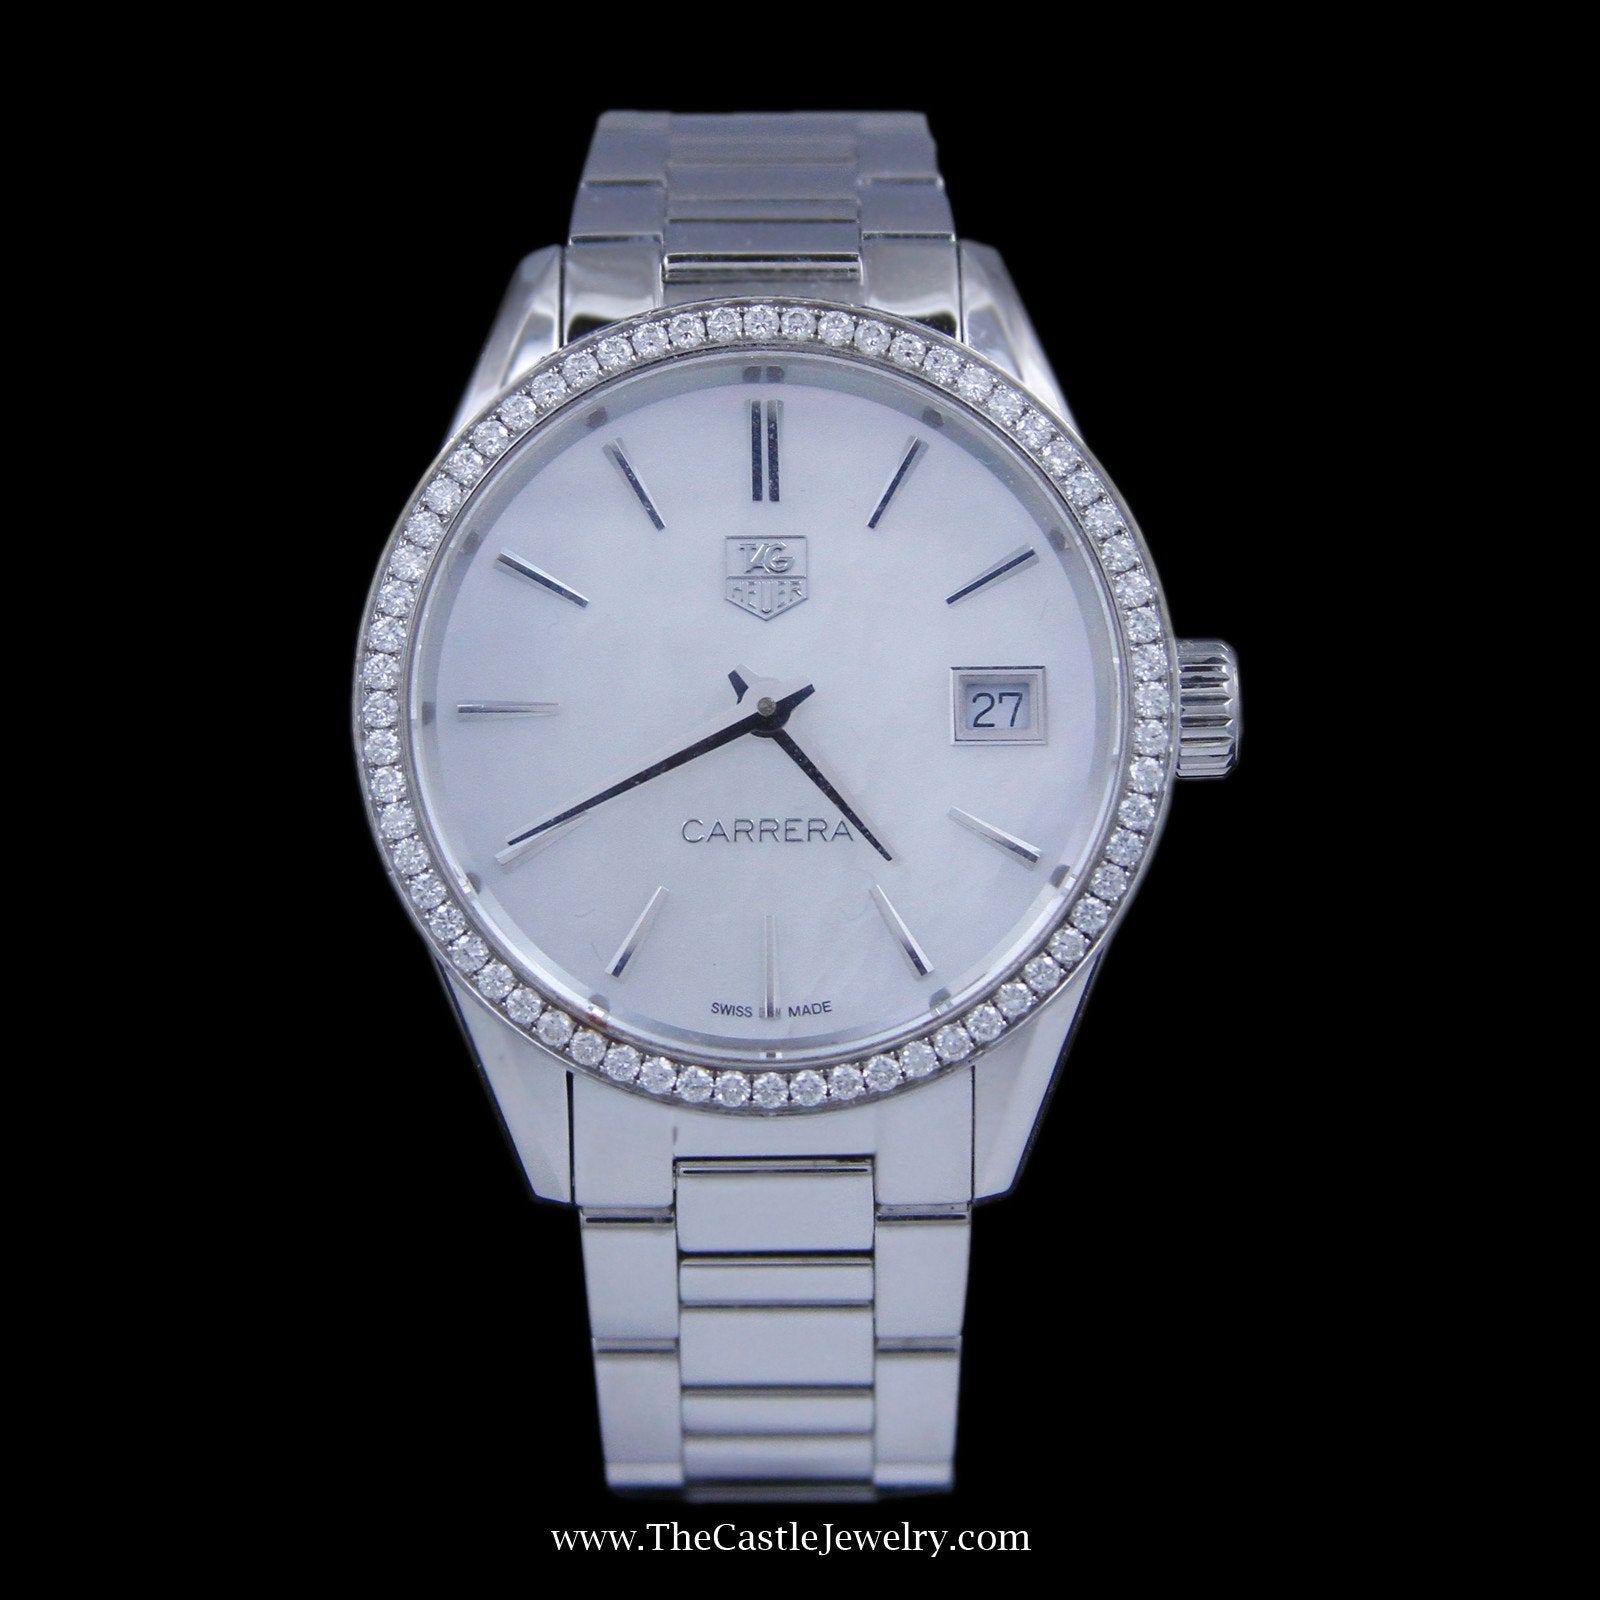 Ladies Tag Carrera Watch 33mm White Pearl Face & Diamond Bezel